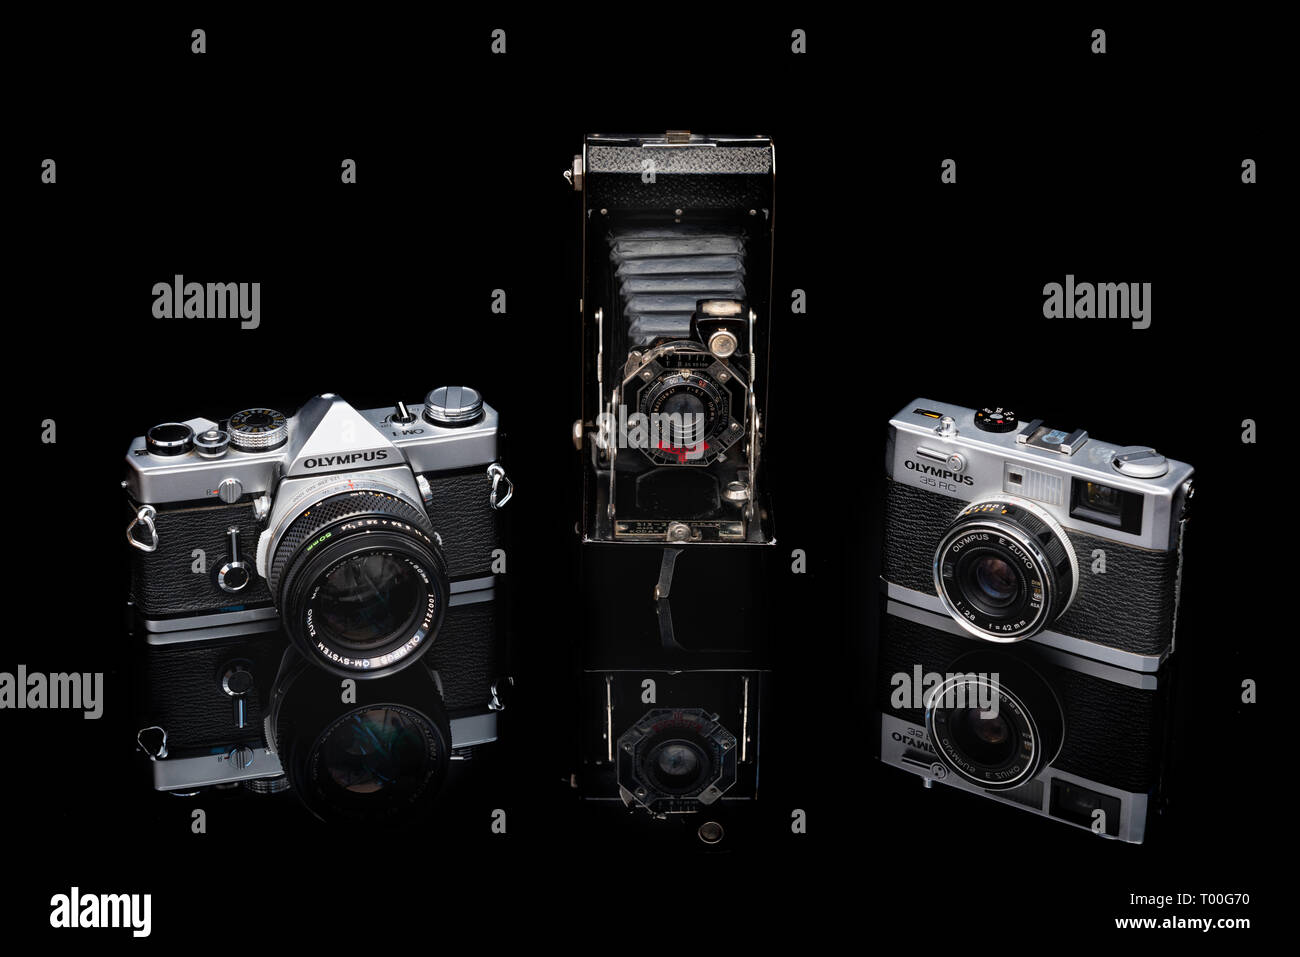 Collection of classic vintage  film cameras including Olympus OM1 35 mm  Single Lens Reflex SLR, Kodak 6-20 folding camera and Olympus RC rangefinder - Stock Image